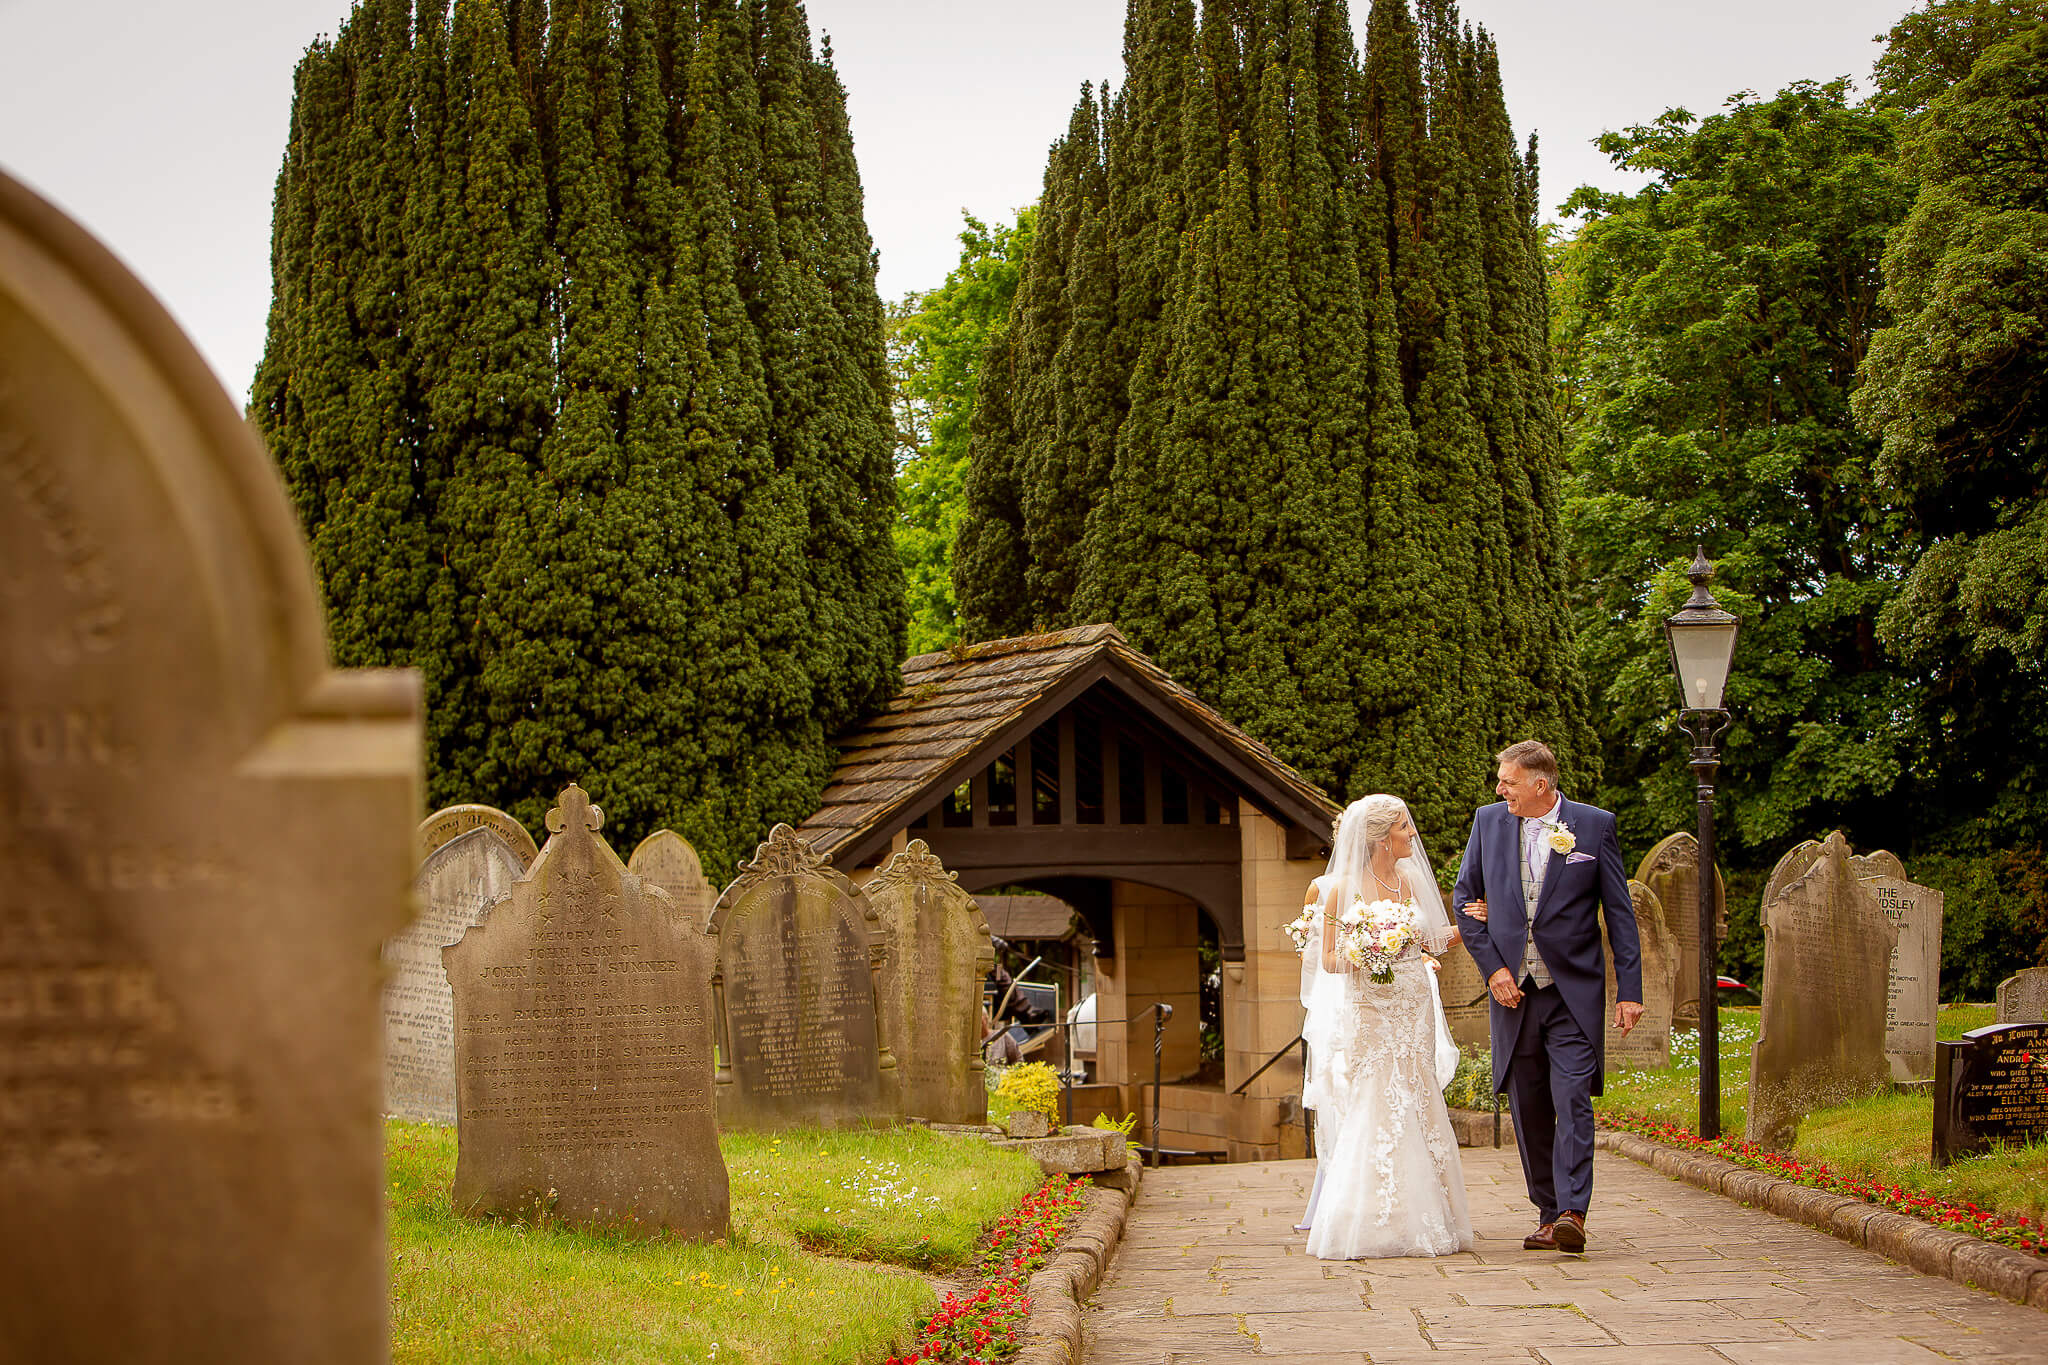 best-wedding-photographers-uk-europe-stanbury-photography-045